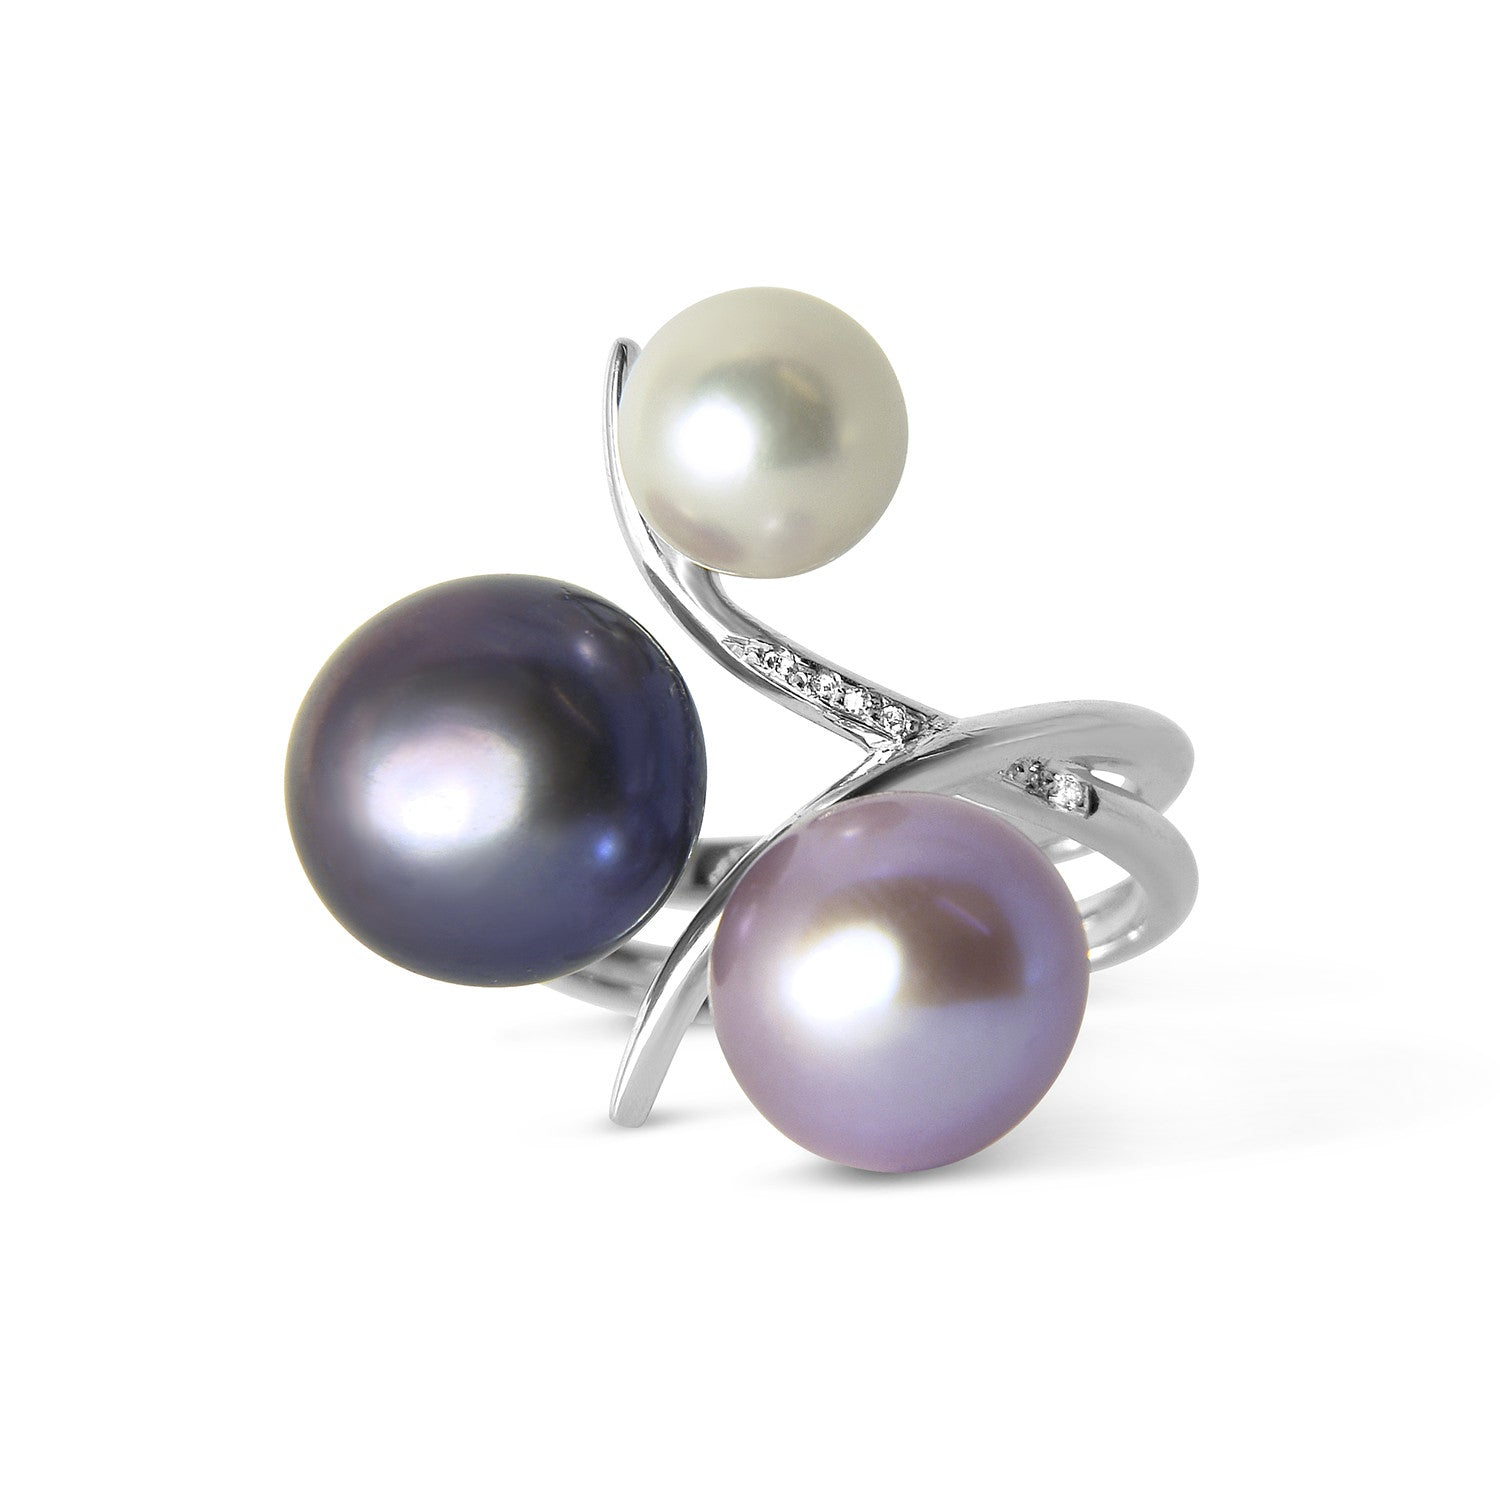 Bespoke Marie cocktail ring - freshwater pearls, diamonds and 18ct recycled white gold